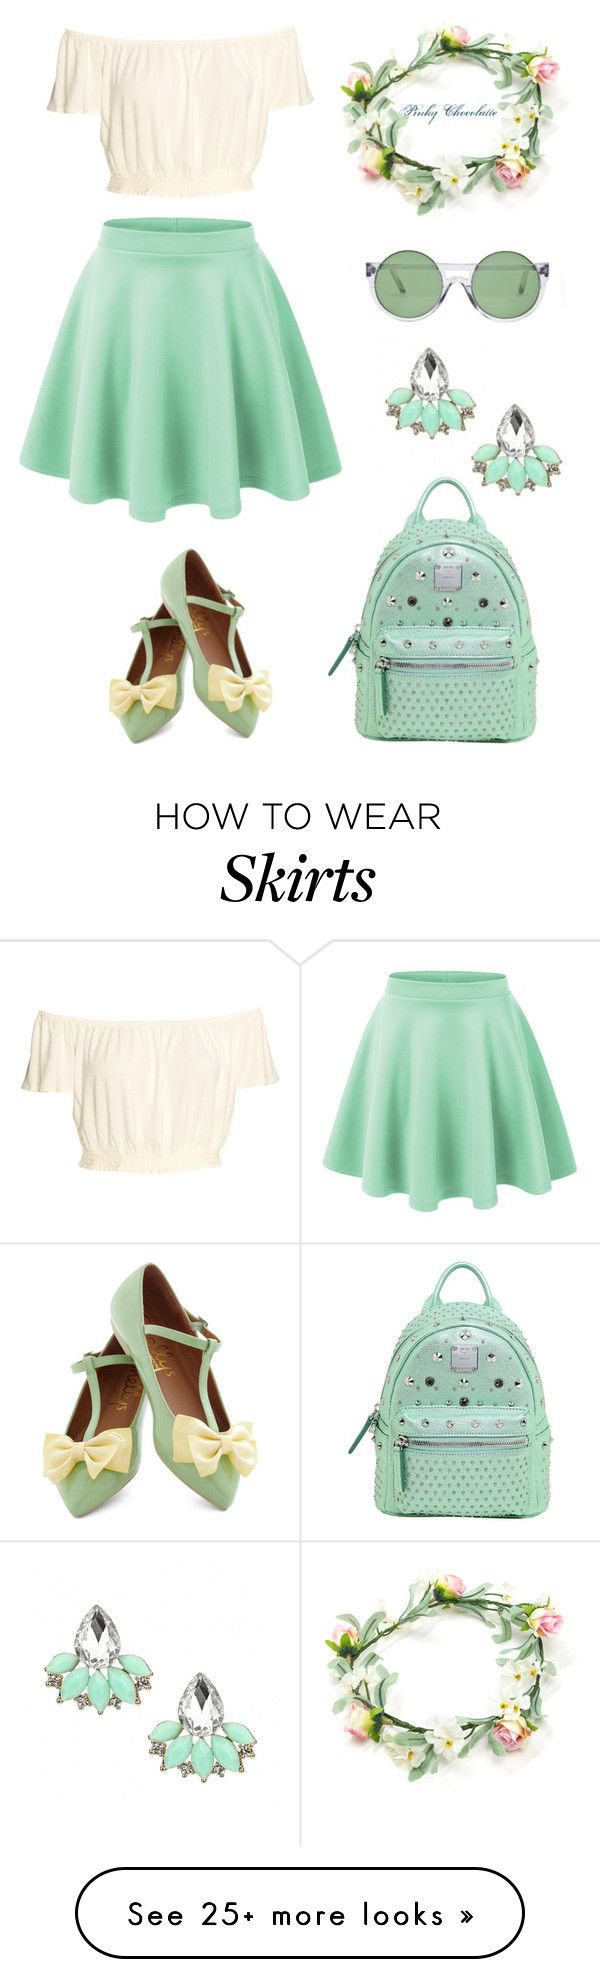 """""""#583 Skater Skirt Outfit: 18/04/16"""" by pinky-chocolatte on Polyvore featuring Shellys, Le Specs and MCM"""